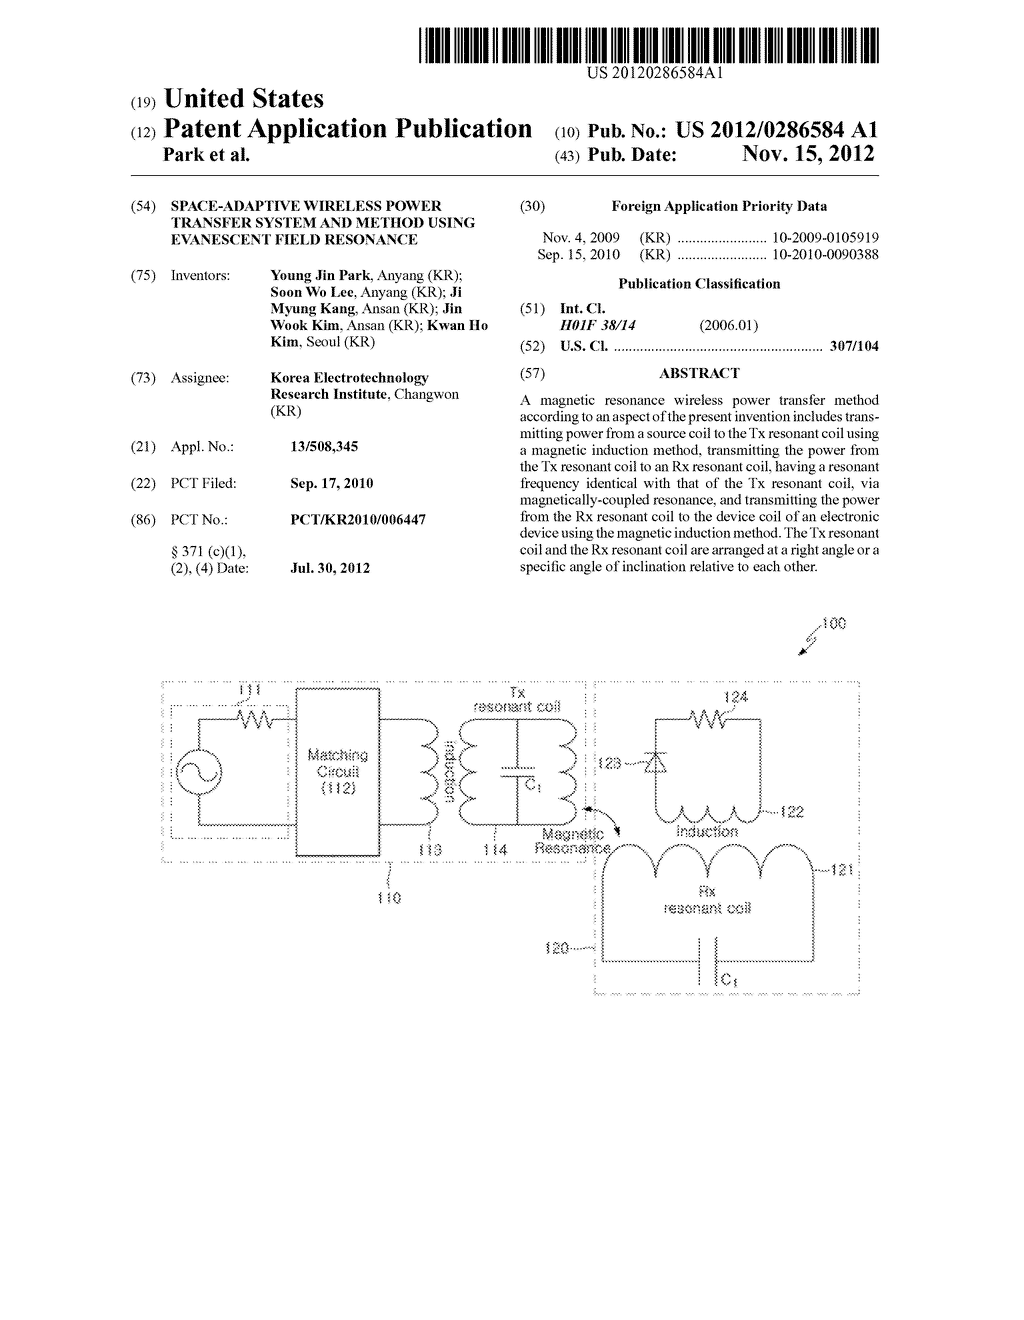 SPACE-ADAPTIVE WIRELESS POWER TRANSFER SYSTEM AND METHOD USING EVANESCENT     FIELD RESONANCE - diagram, schematic, and image 01